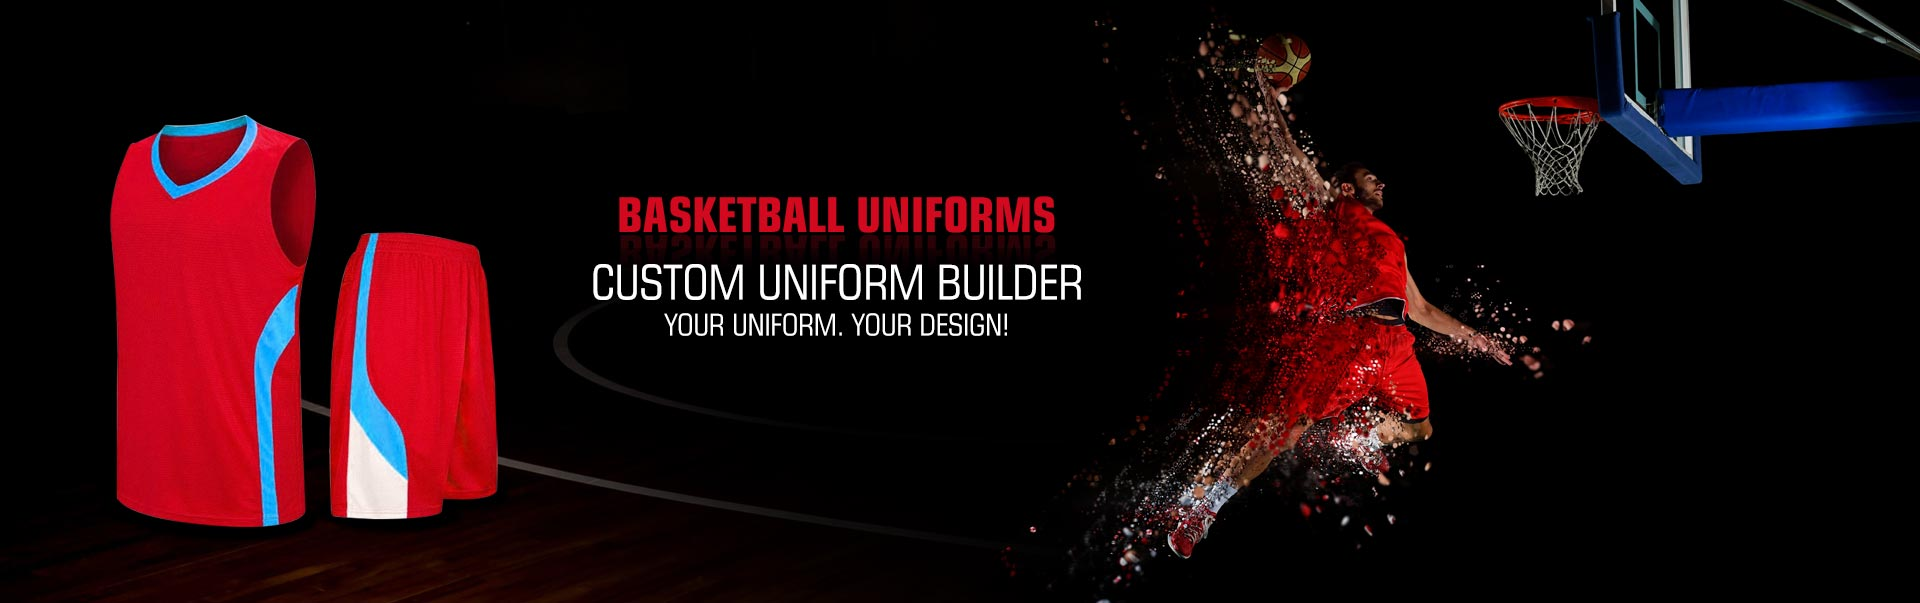 Basketball Uniforms Wholesaler, Suppliers in Grand Rapids